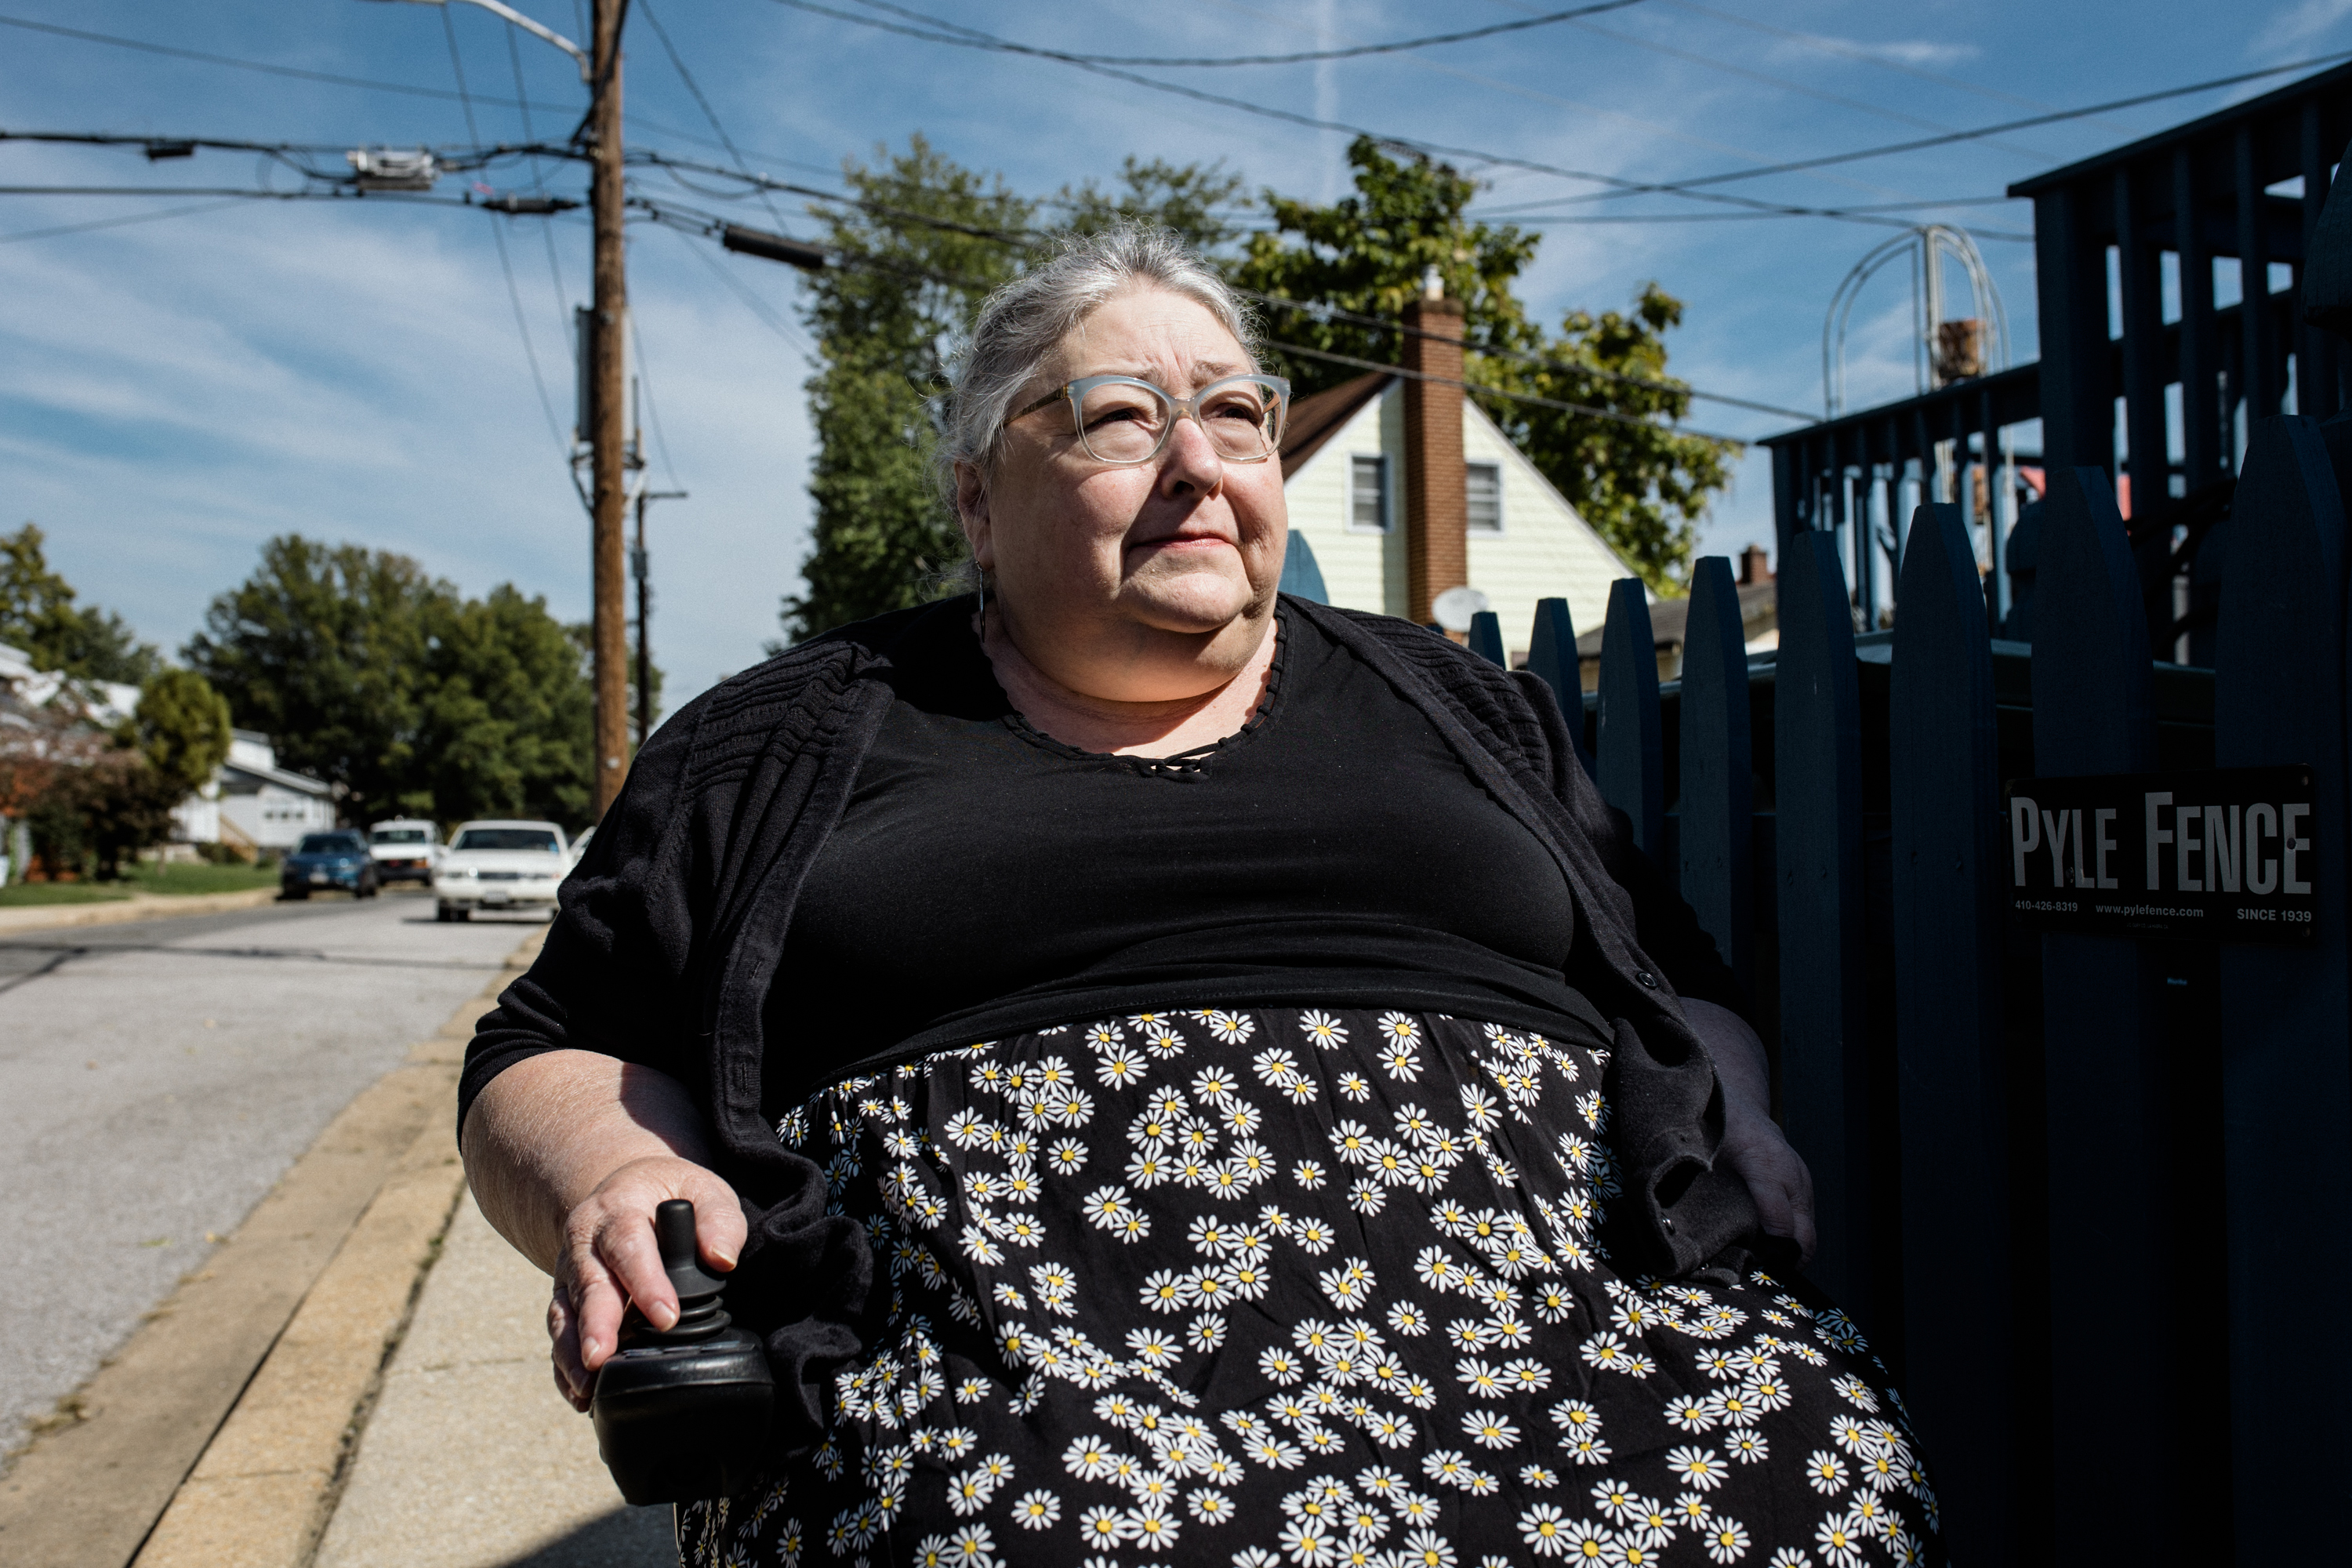 Susan Goodlaxson began using a wheelchair five years ago, following surgery for a brain tumor. On the block where she lives in Baltimore, there isn't a single curb ramp―despite requirements for such accessibility under the Americans with Disabilities Act.